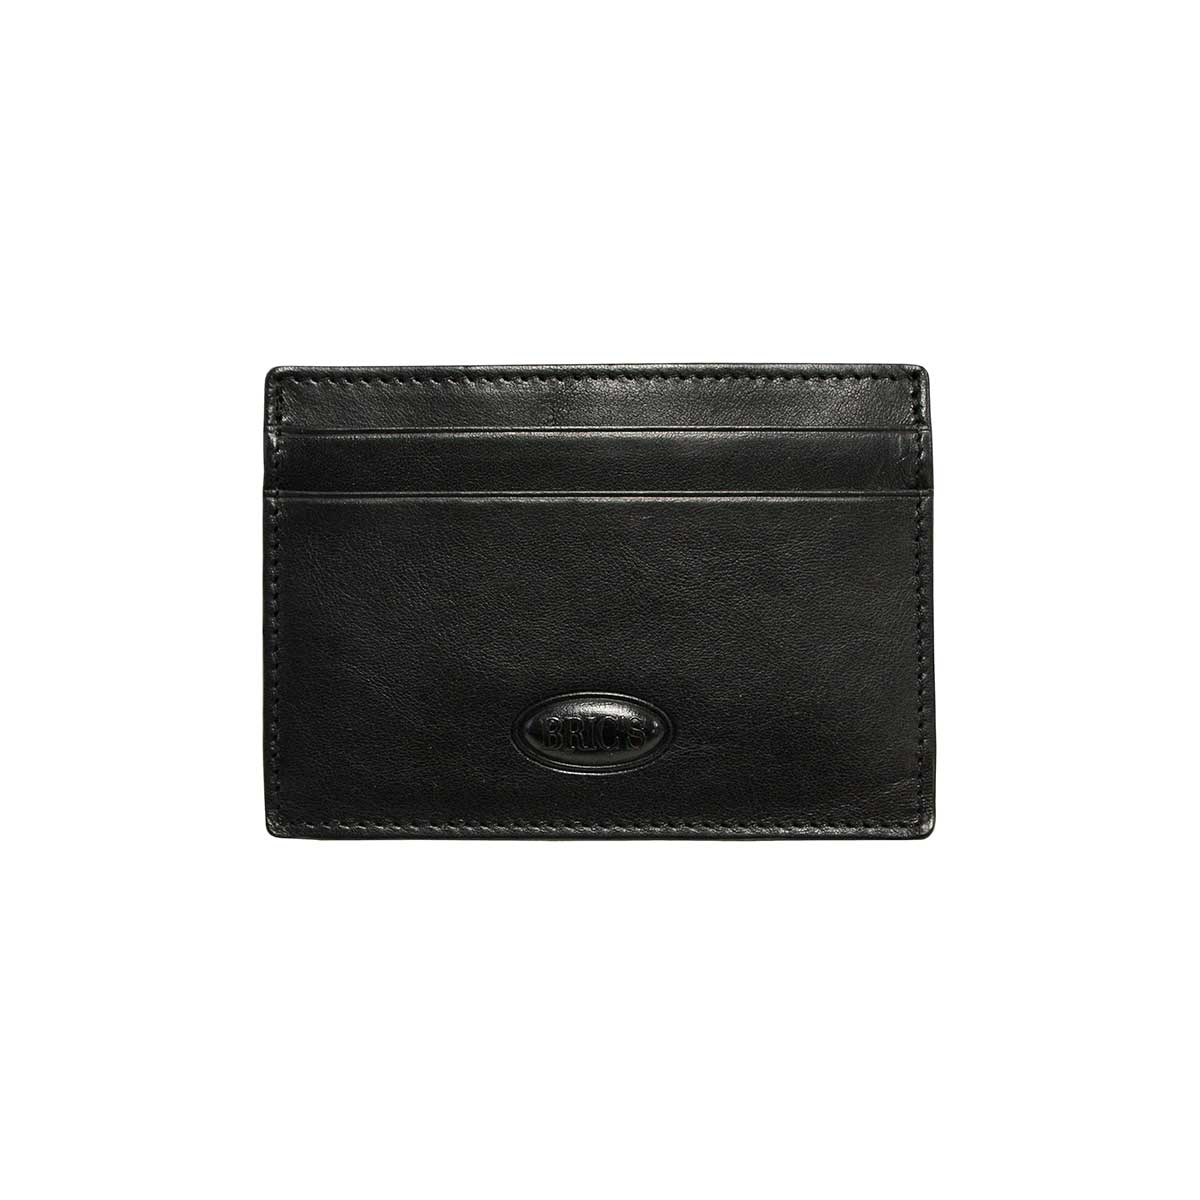 on sale 5c29d 14fa6 Monte Rosa Slim Card Case with Money Clip - Black